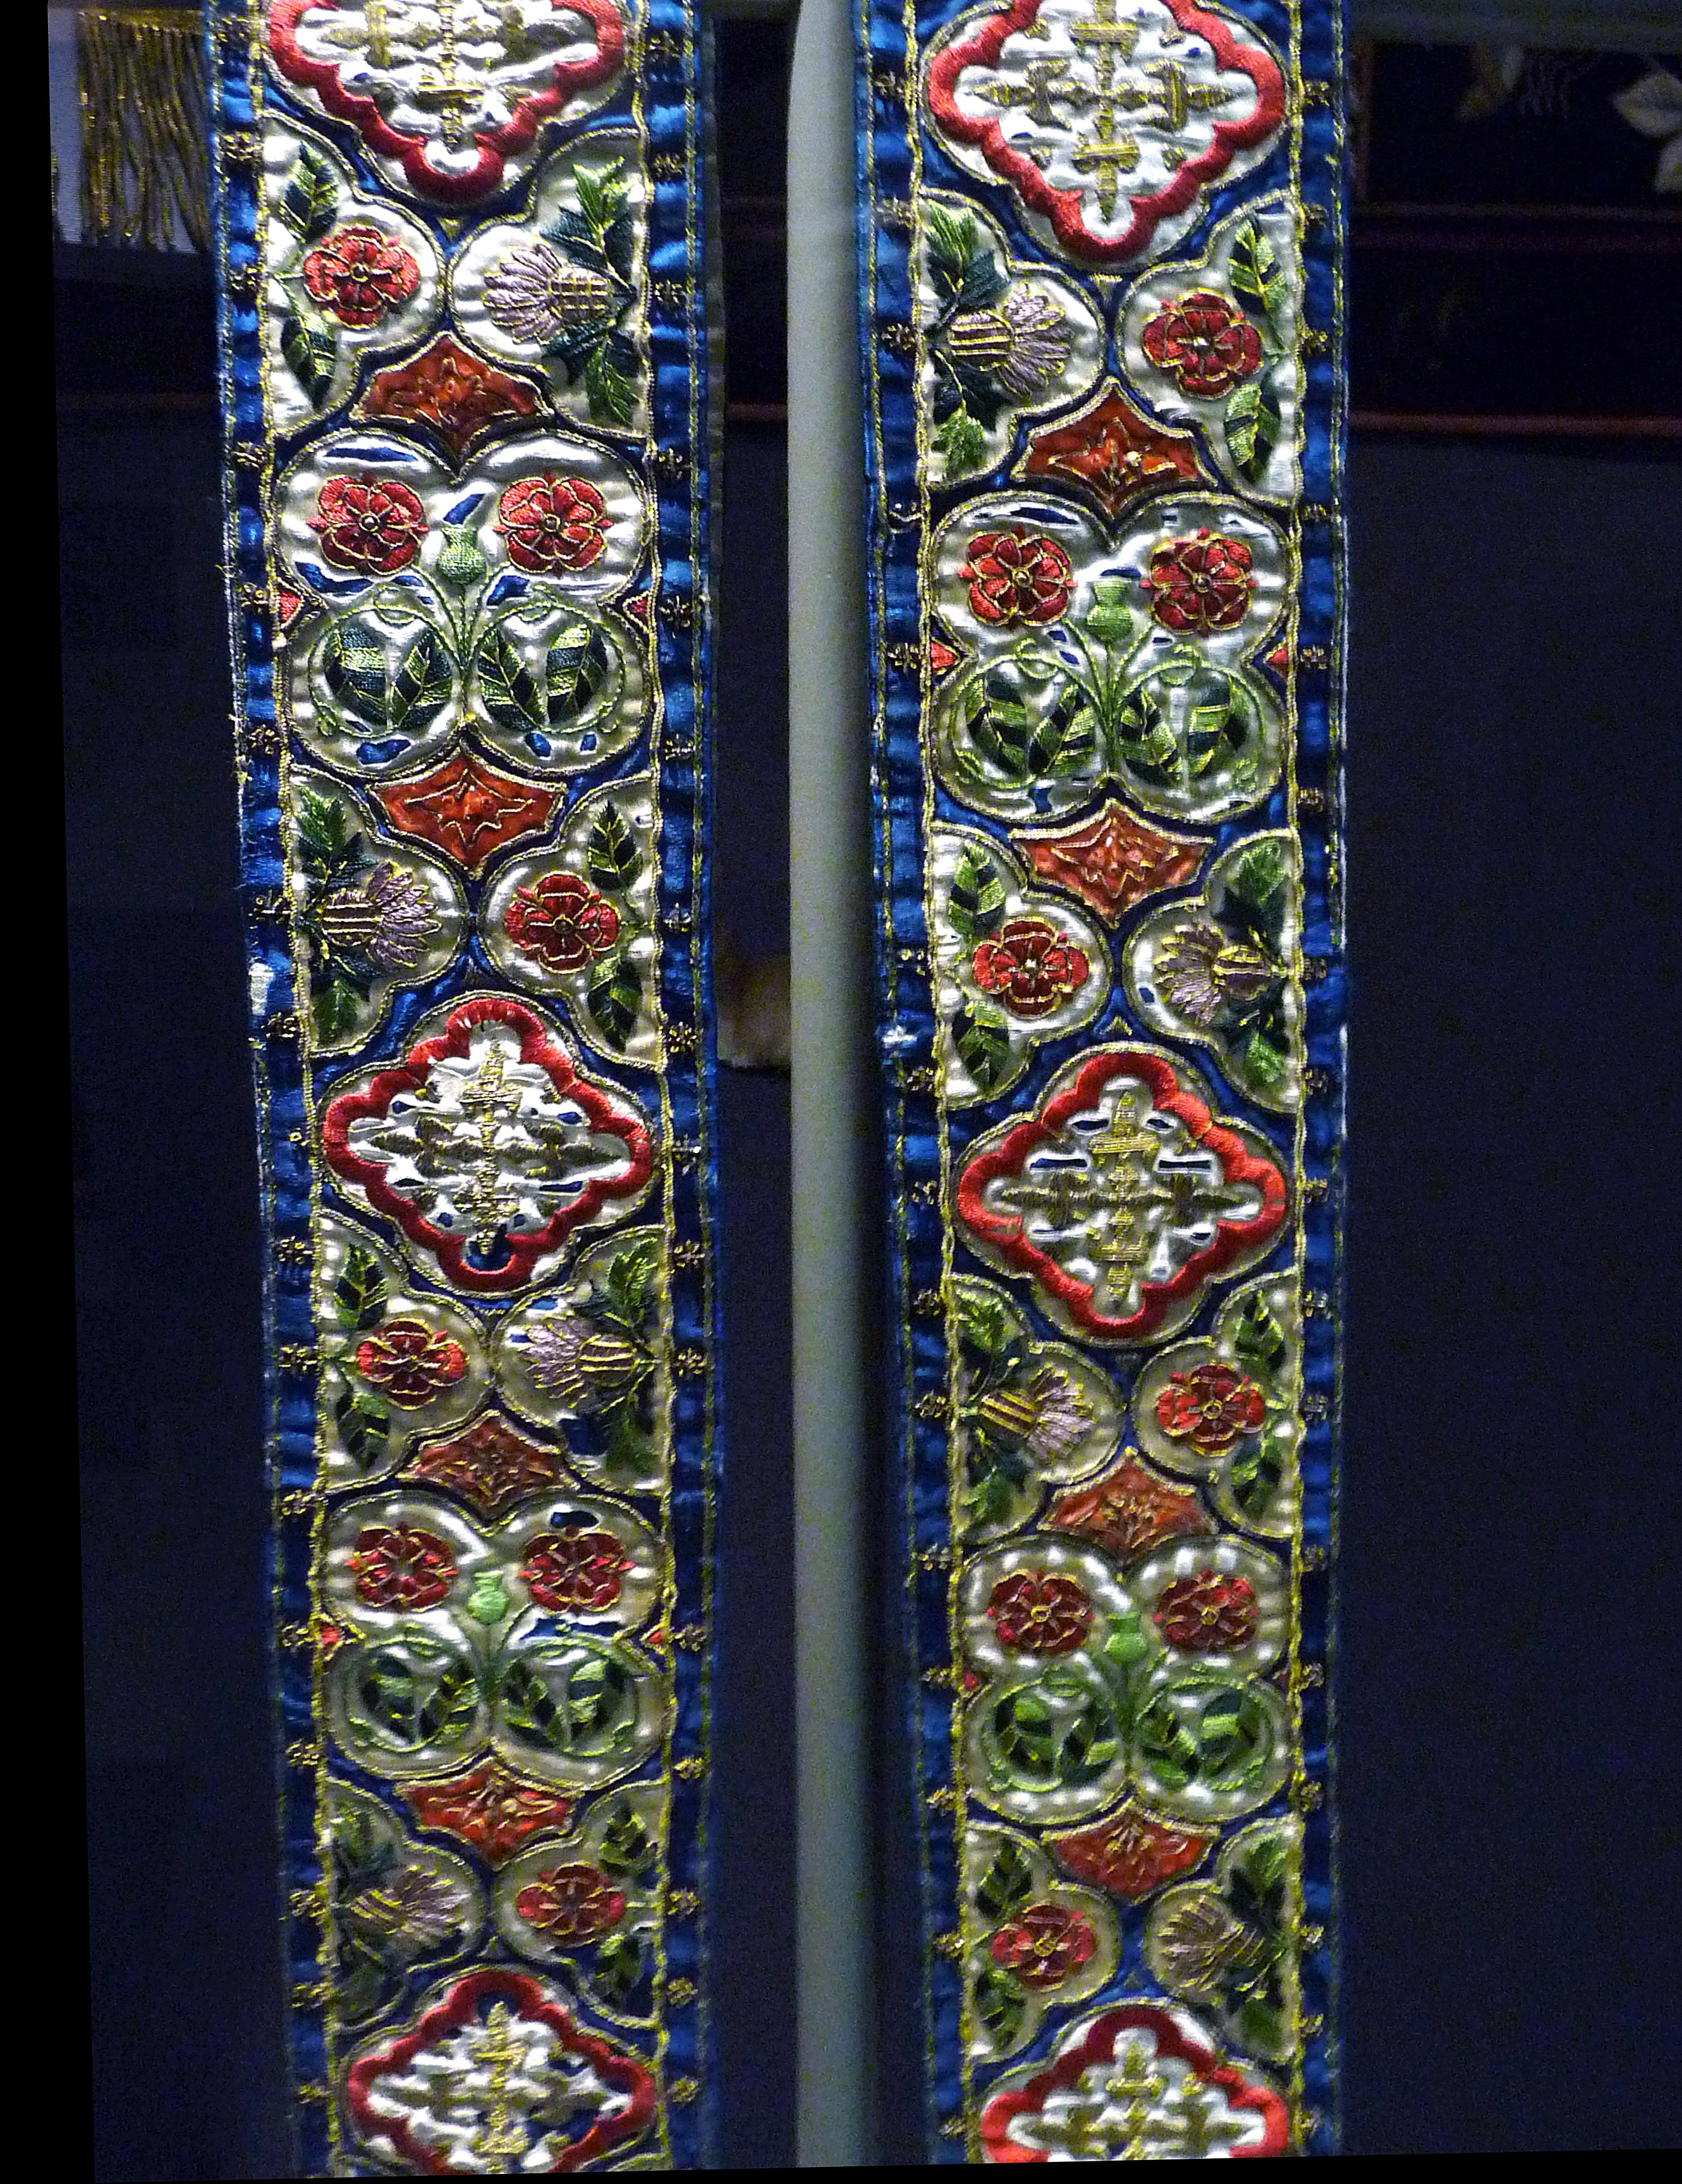 embroidered Stole on display in Lady Hoare Gallery of Liverpool Cathedral. Designed between 1840 and 1850 by Augustus Pugin and embroidered in Mrs Powell's workshop. She was the wife of Canon Powell of Knotty Ash.